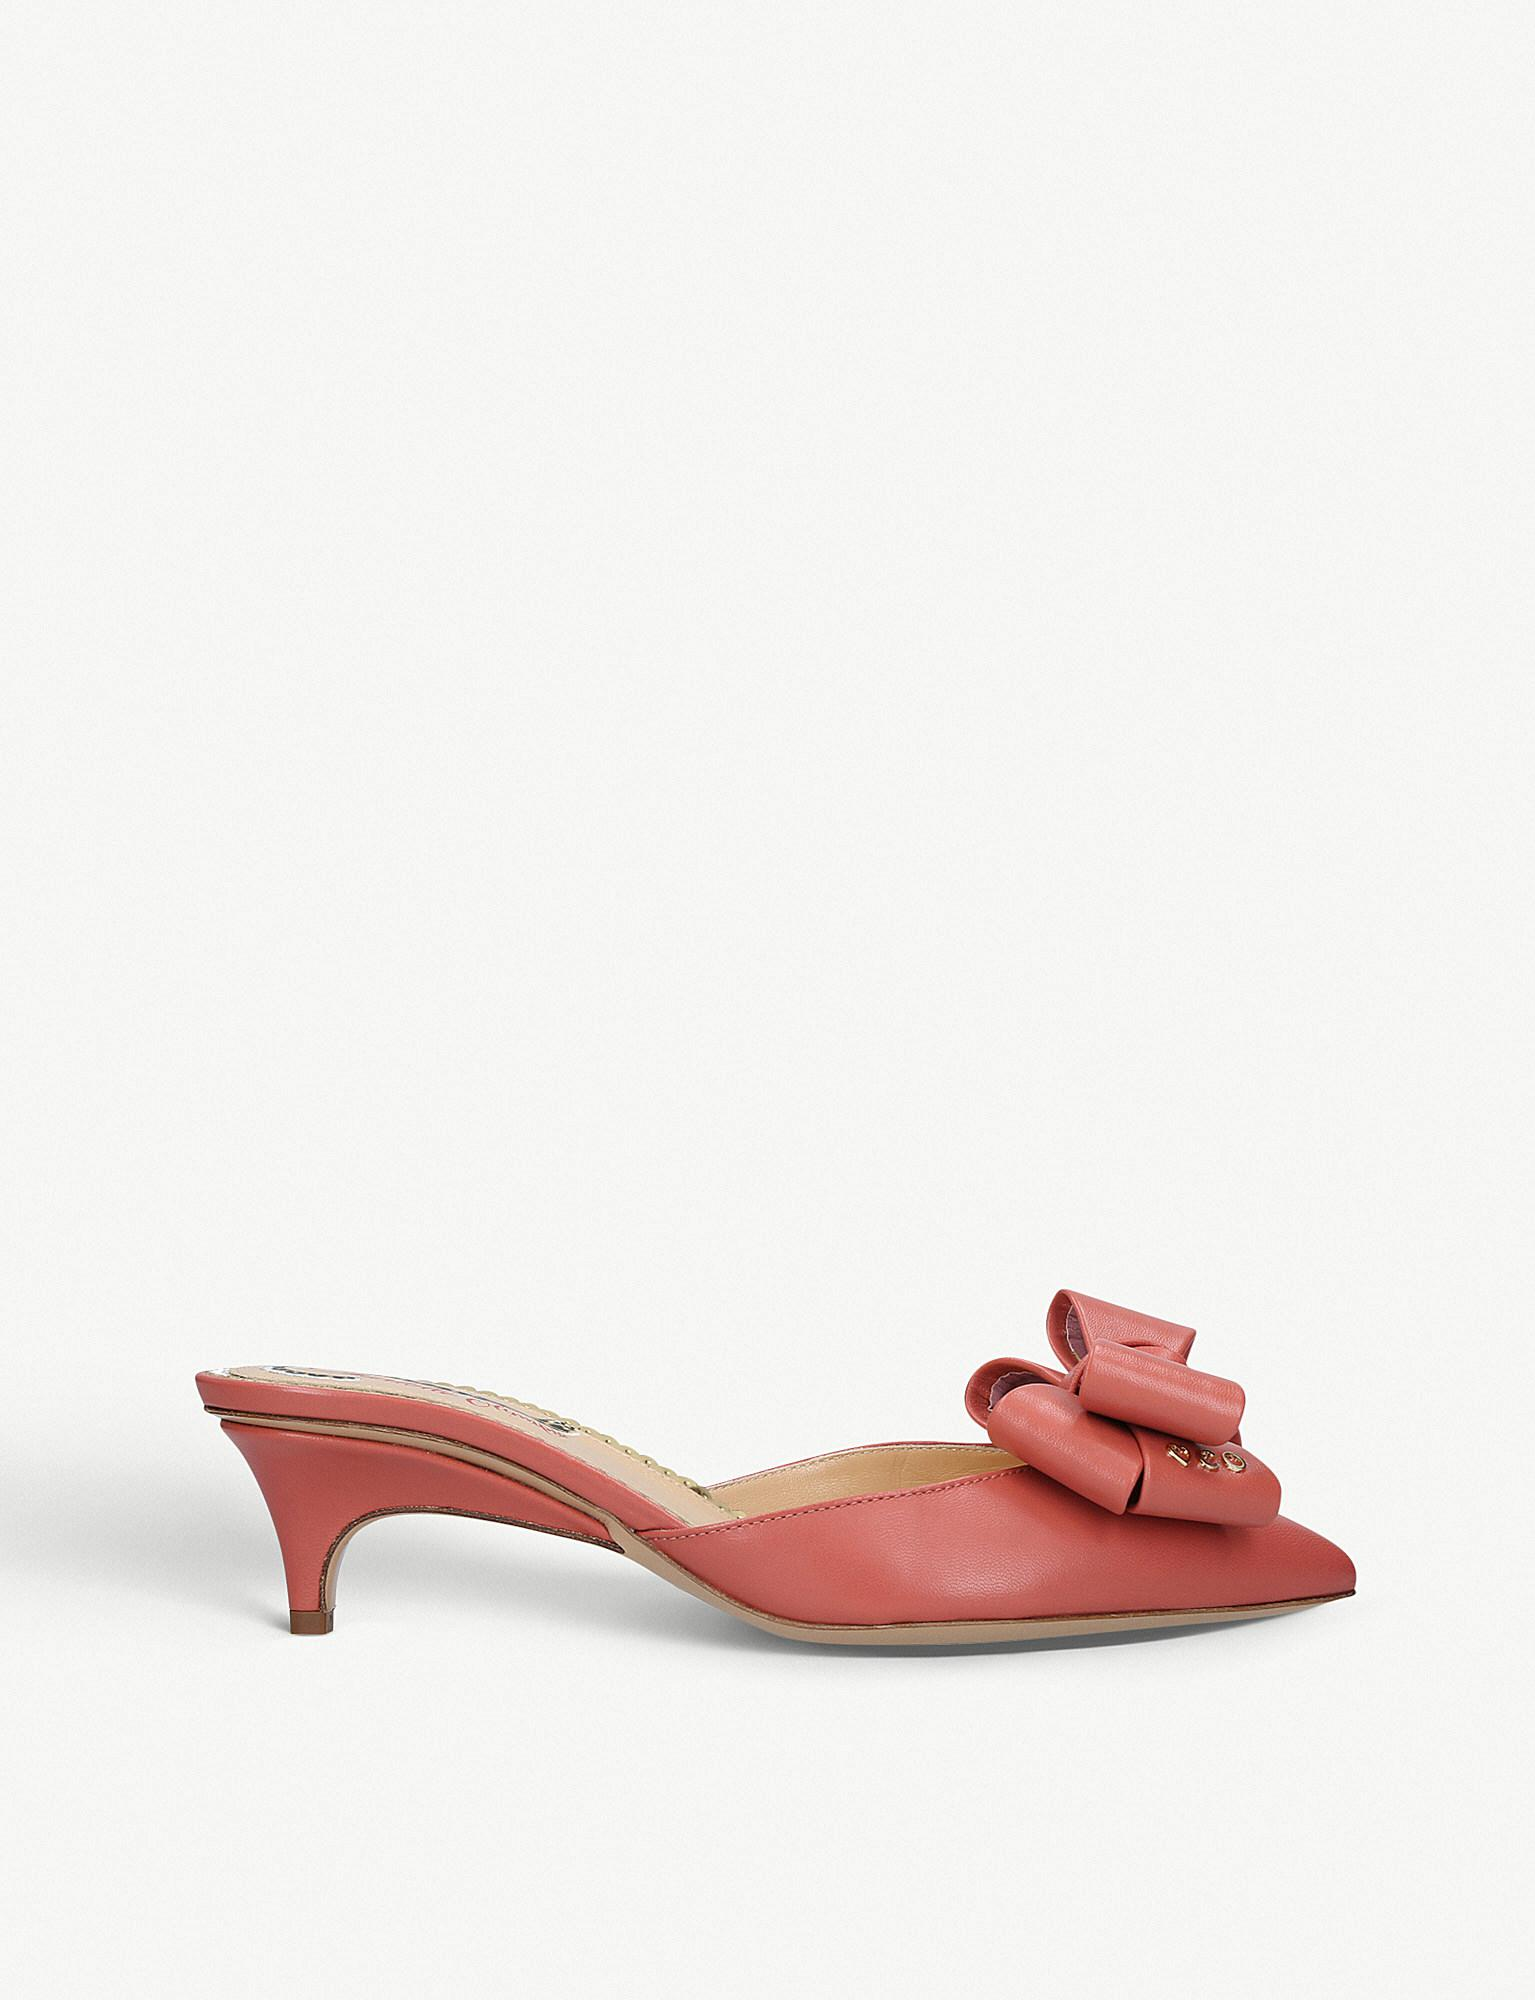 345193a6d8a Charlotte Olympia Bow-front Leather Kitten-heel Mules in Pink - Lyst